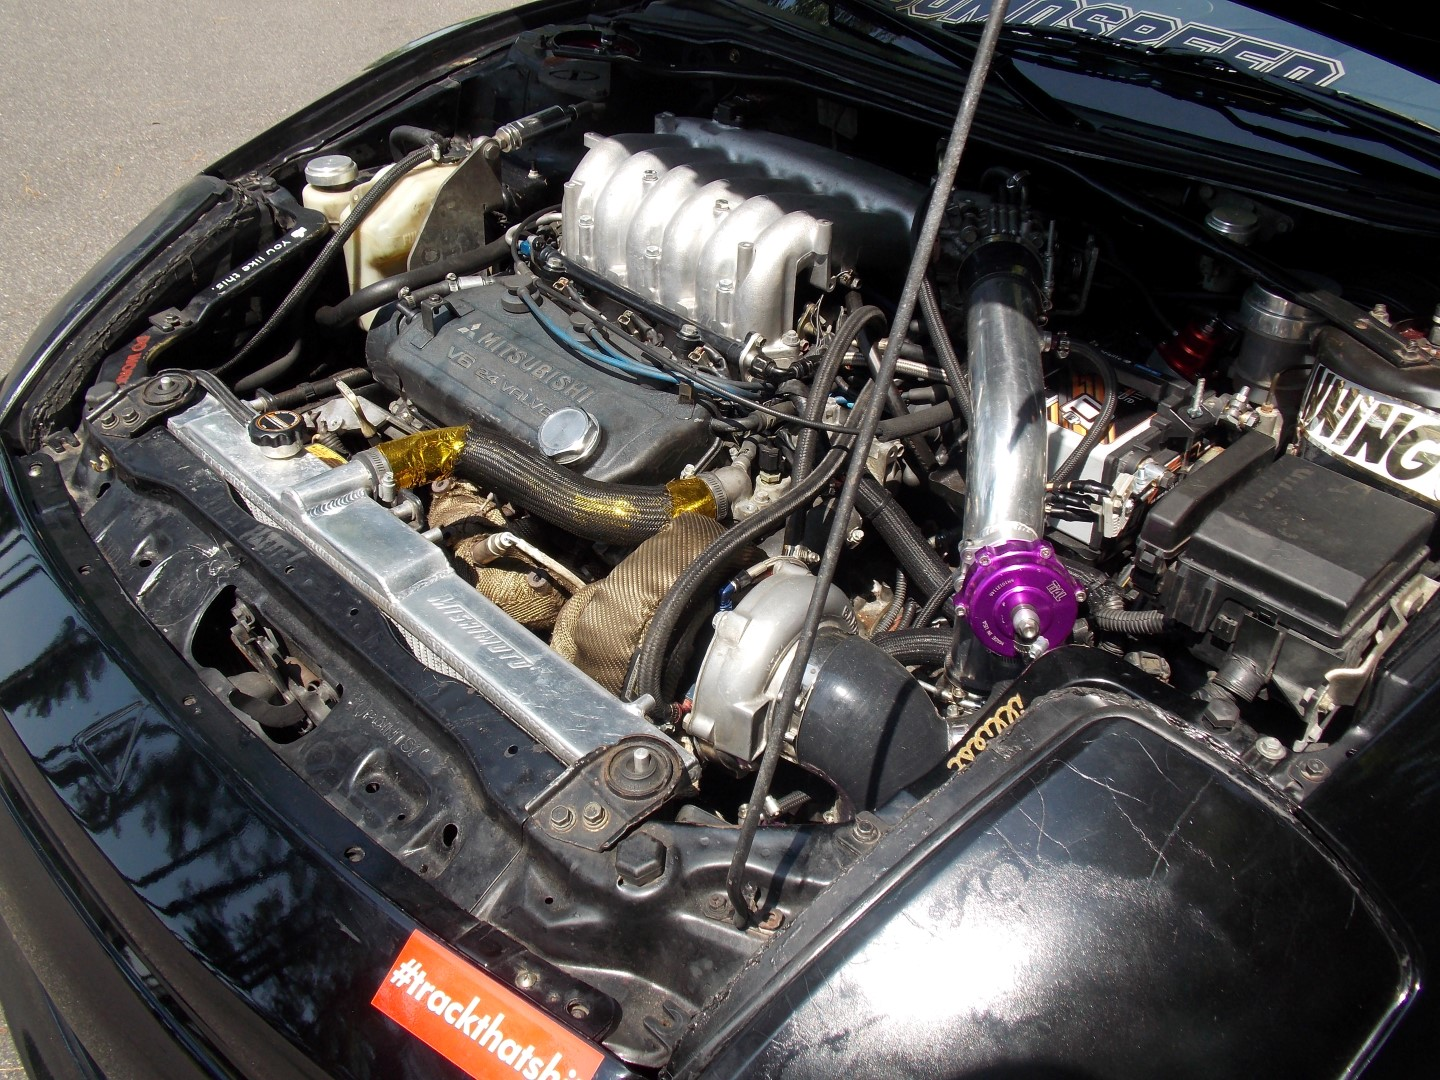 Tavorious tried the popular supercharger setup, but soon opted for a more efficient turbocharger.